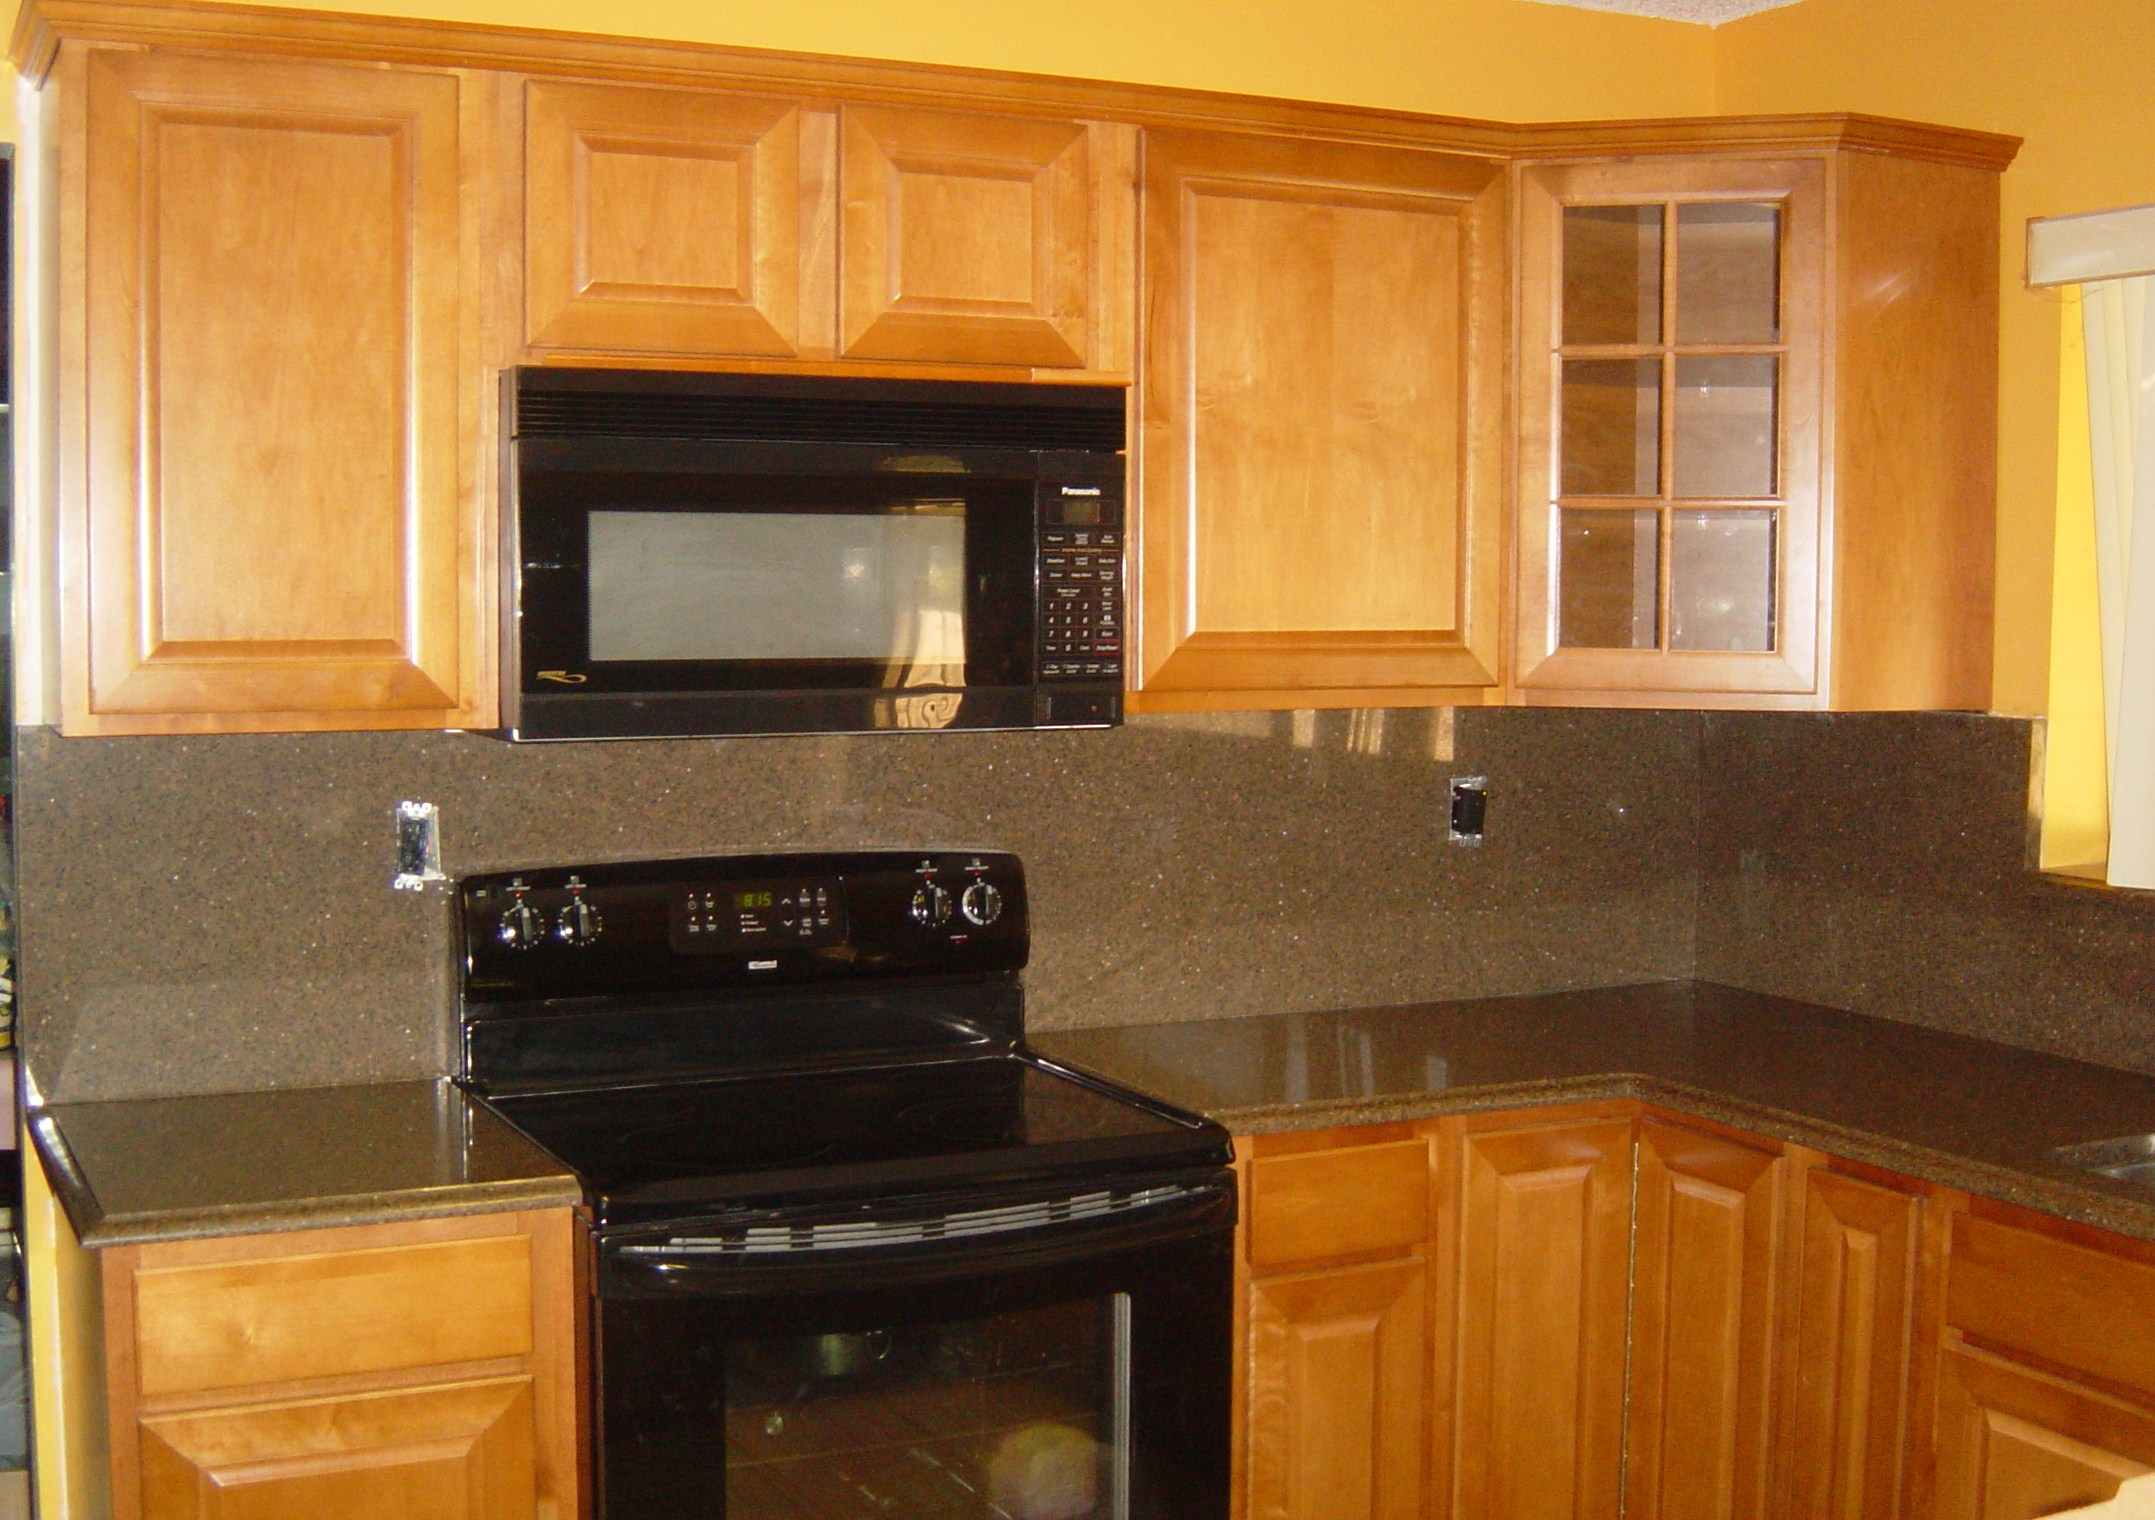 Harmonious Kitchen Paint Colors with Maple Cabinets ... on What Color Backsplash With Maple Cabinets  id=21407